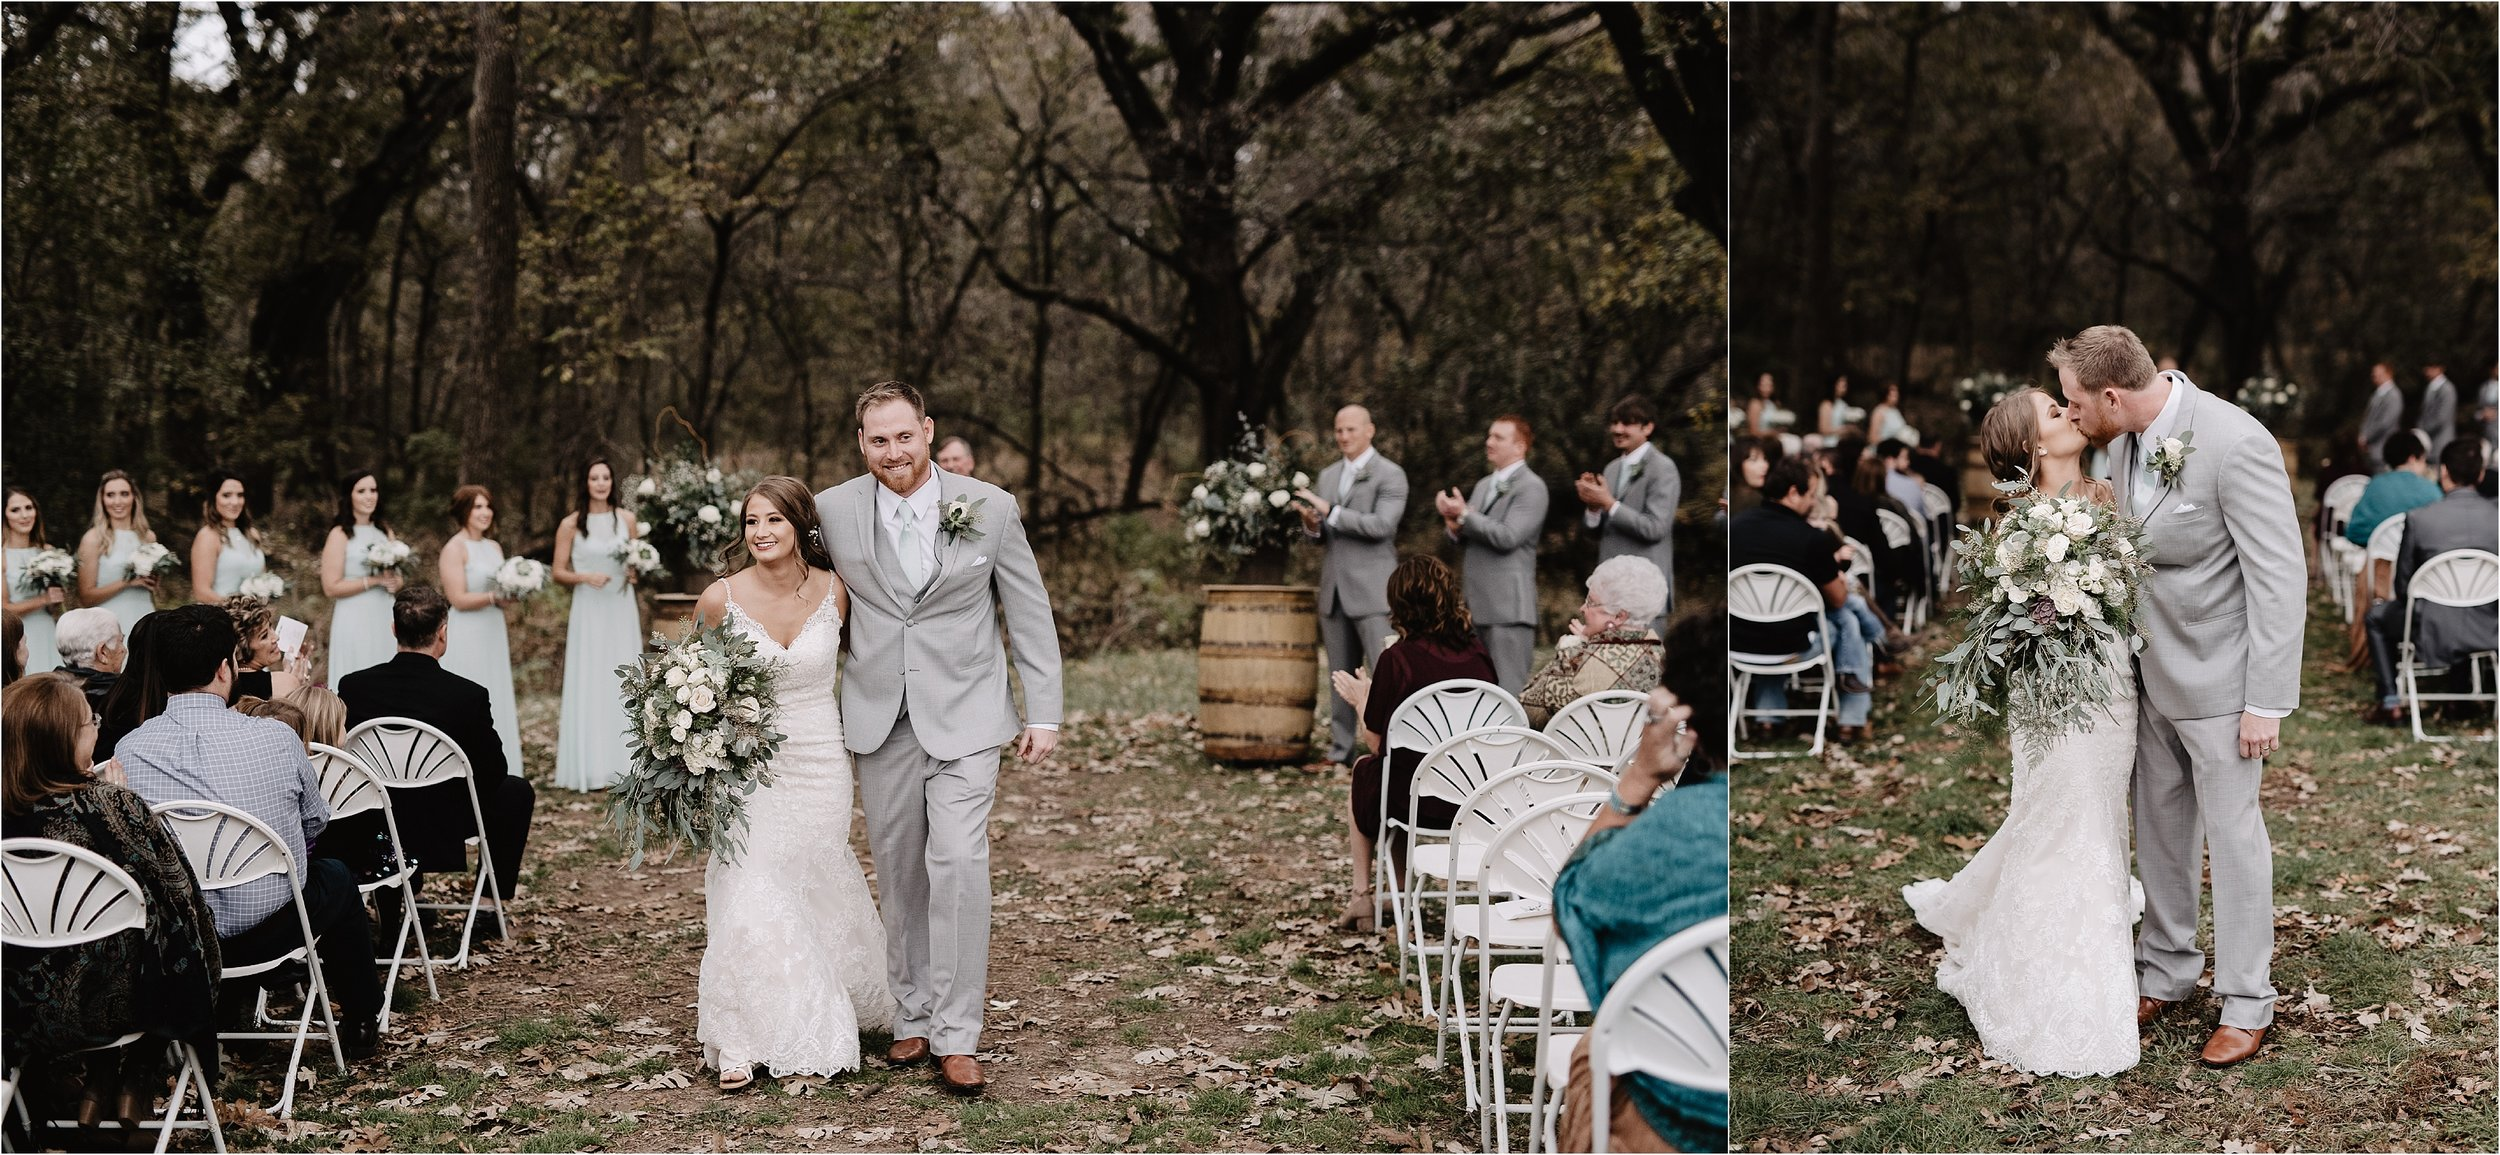 Fulton Valley Farms Wedding, Abby Bindrum & Jordan Sroufe, Wichita Wedding Photographer-51.jpg